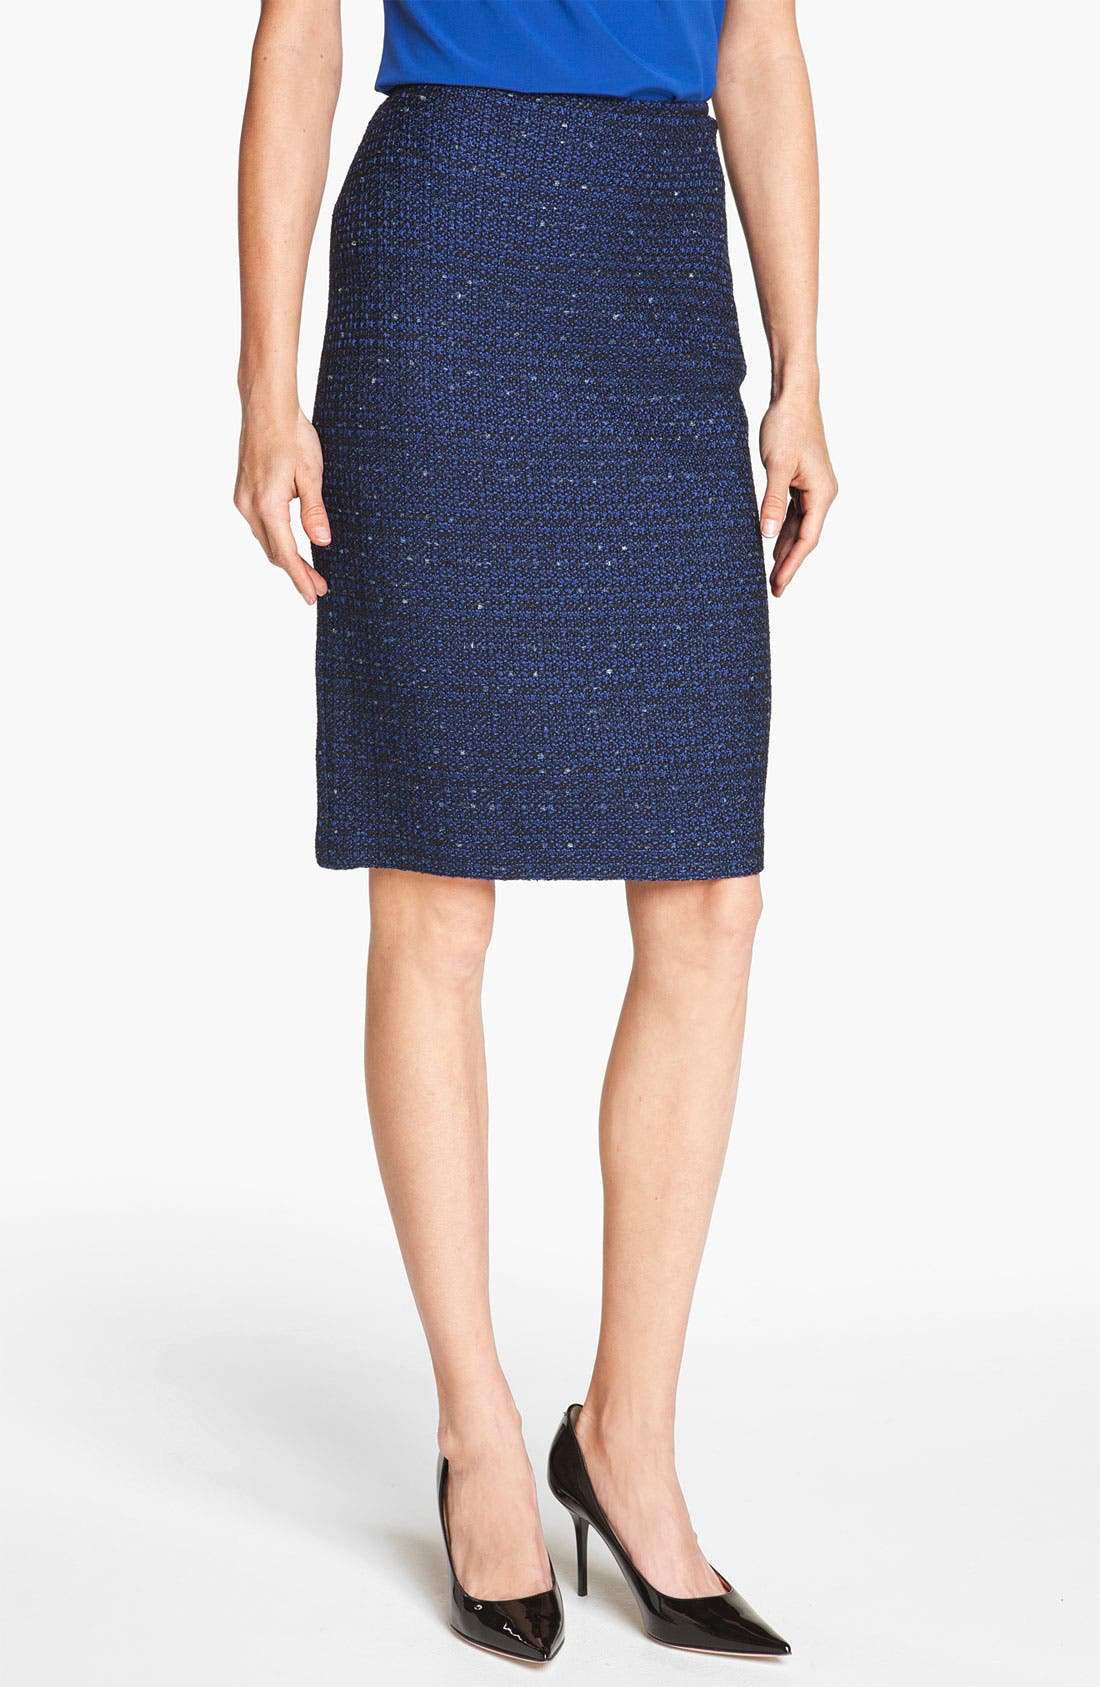 Alternate Image 1 Selected - St. John Collection Tweed Knit Pencil Skirt